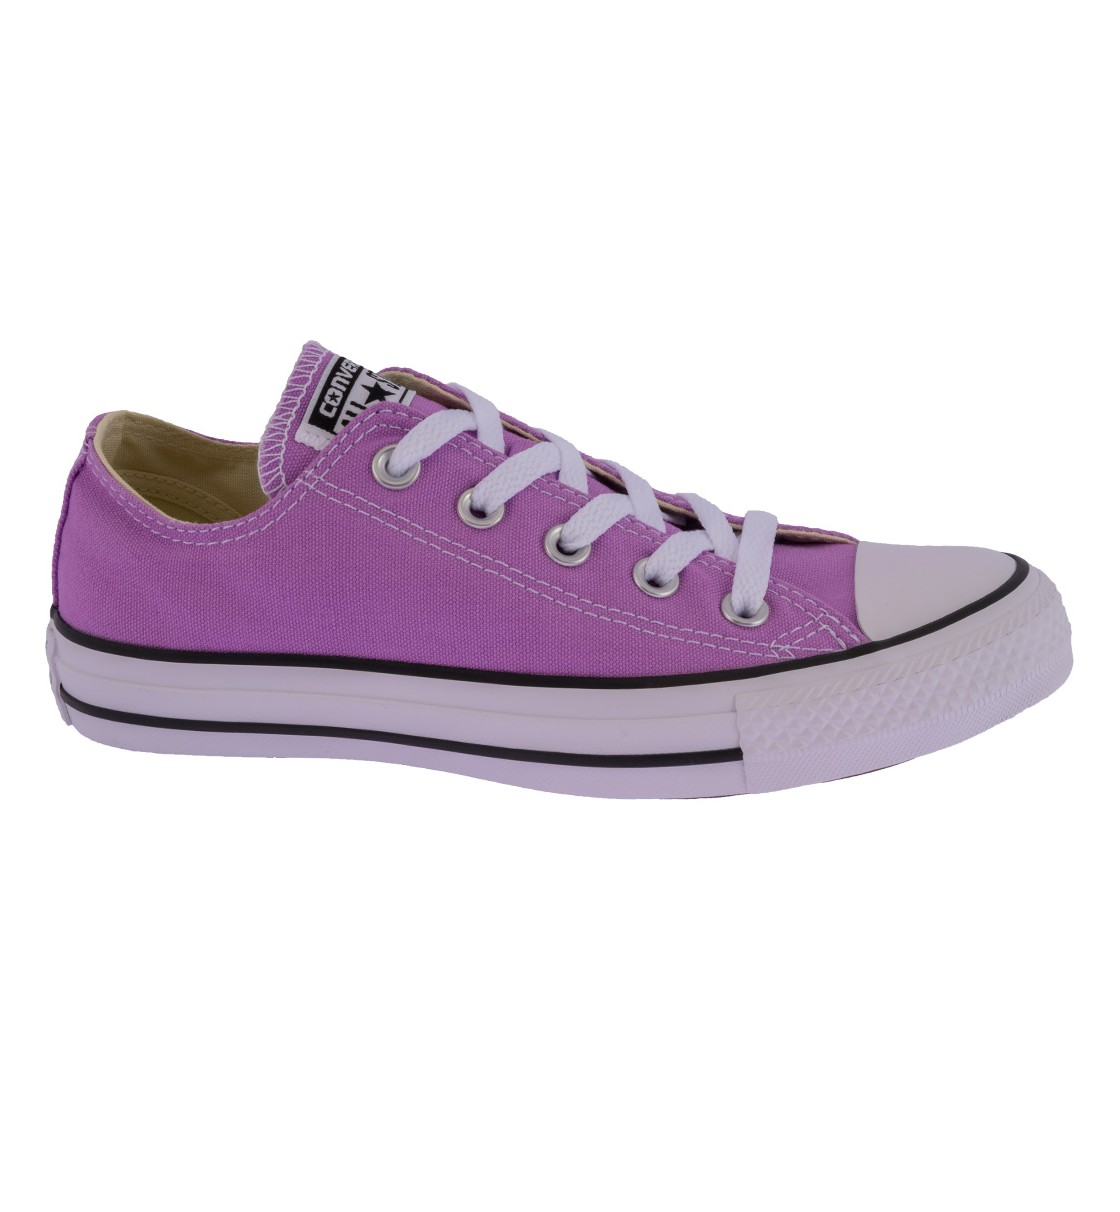 Converse Unisex Παπούτσι Μόδας Chuck Taylor All Star Ox 155576C